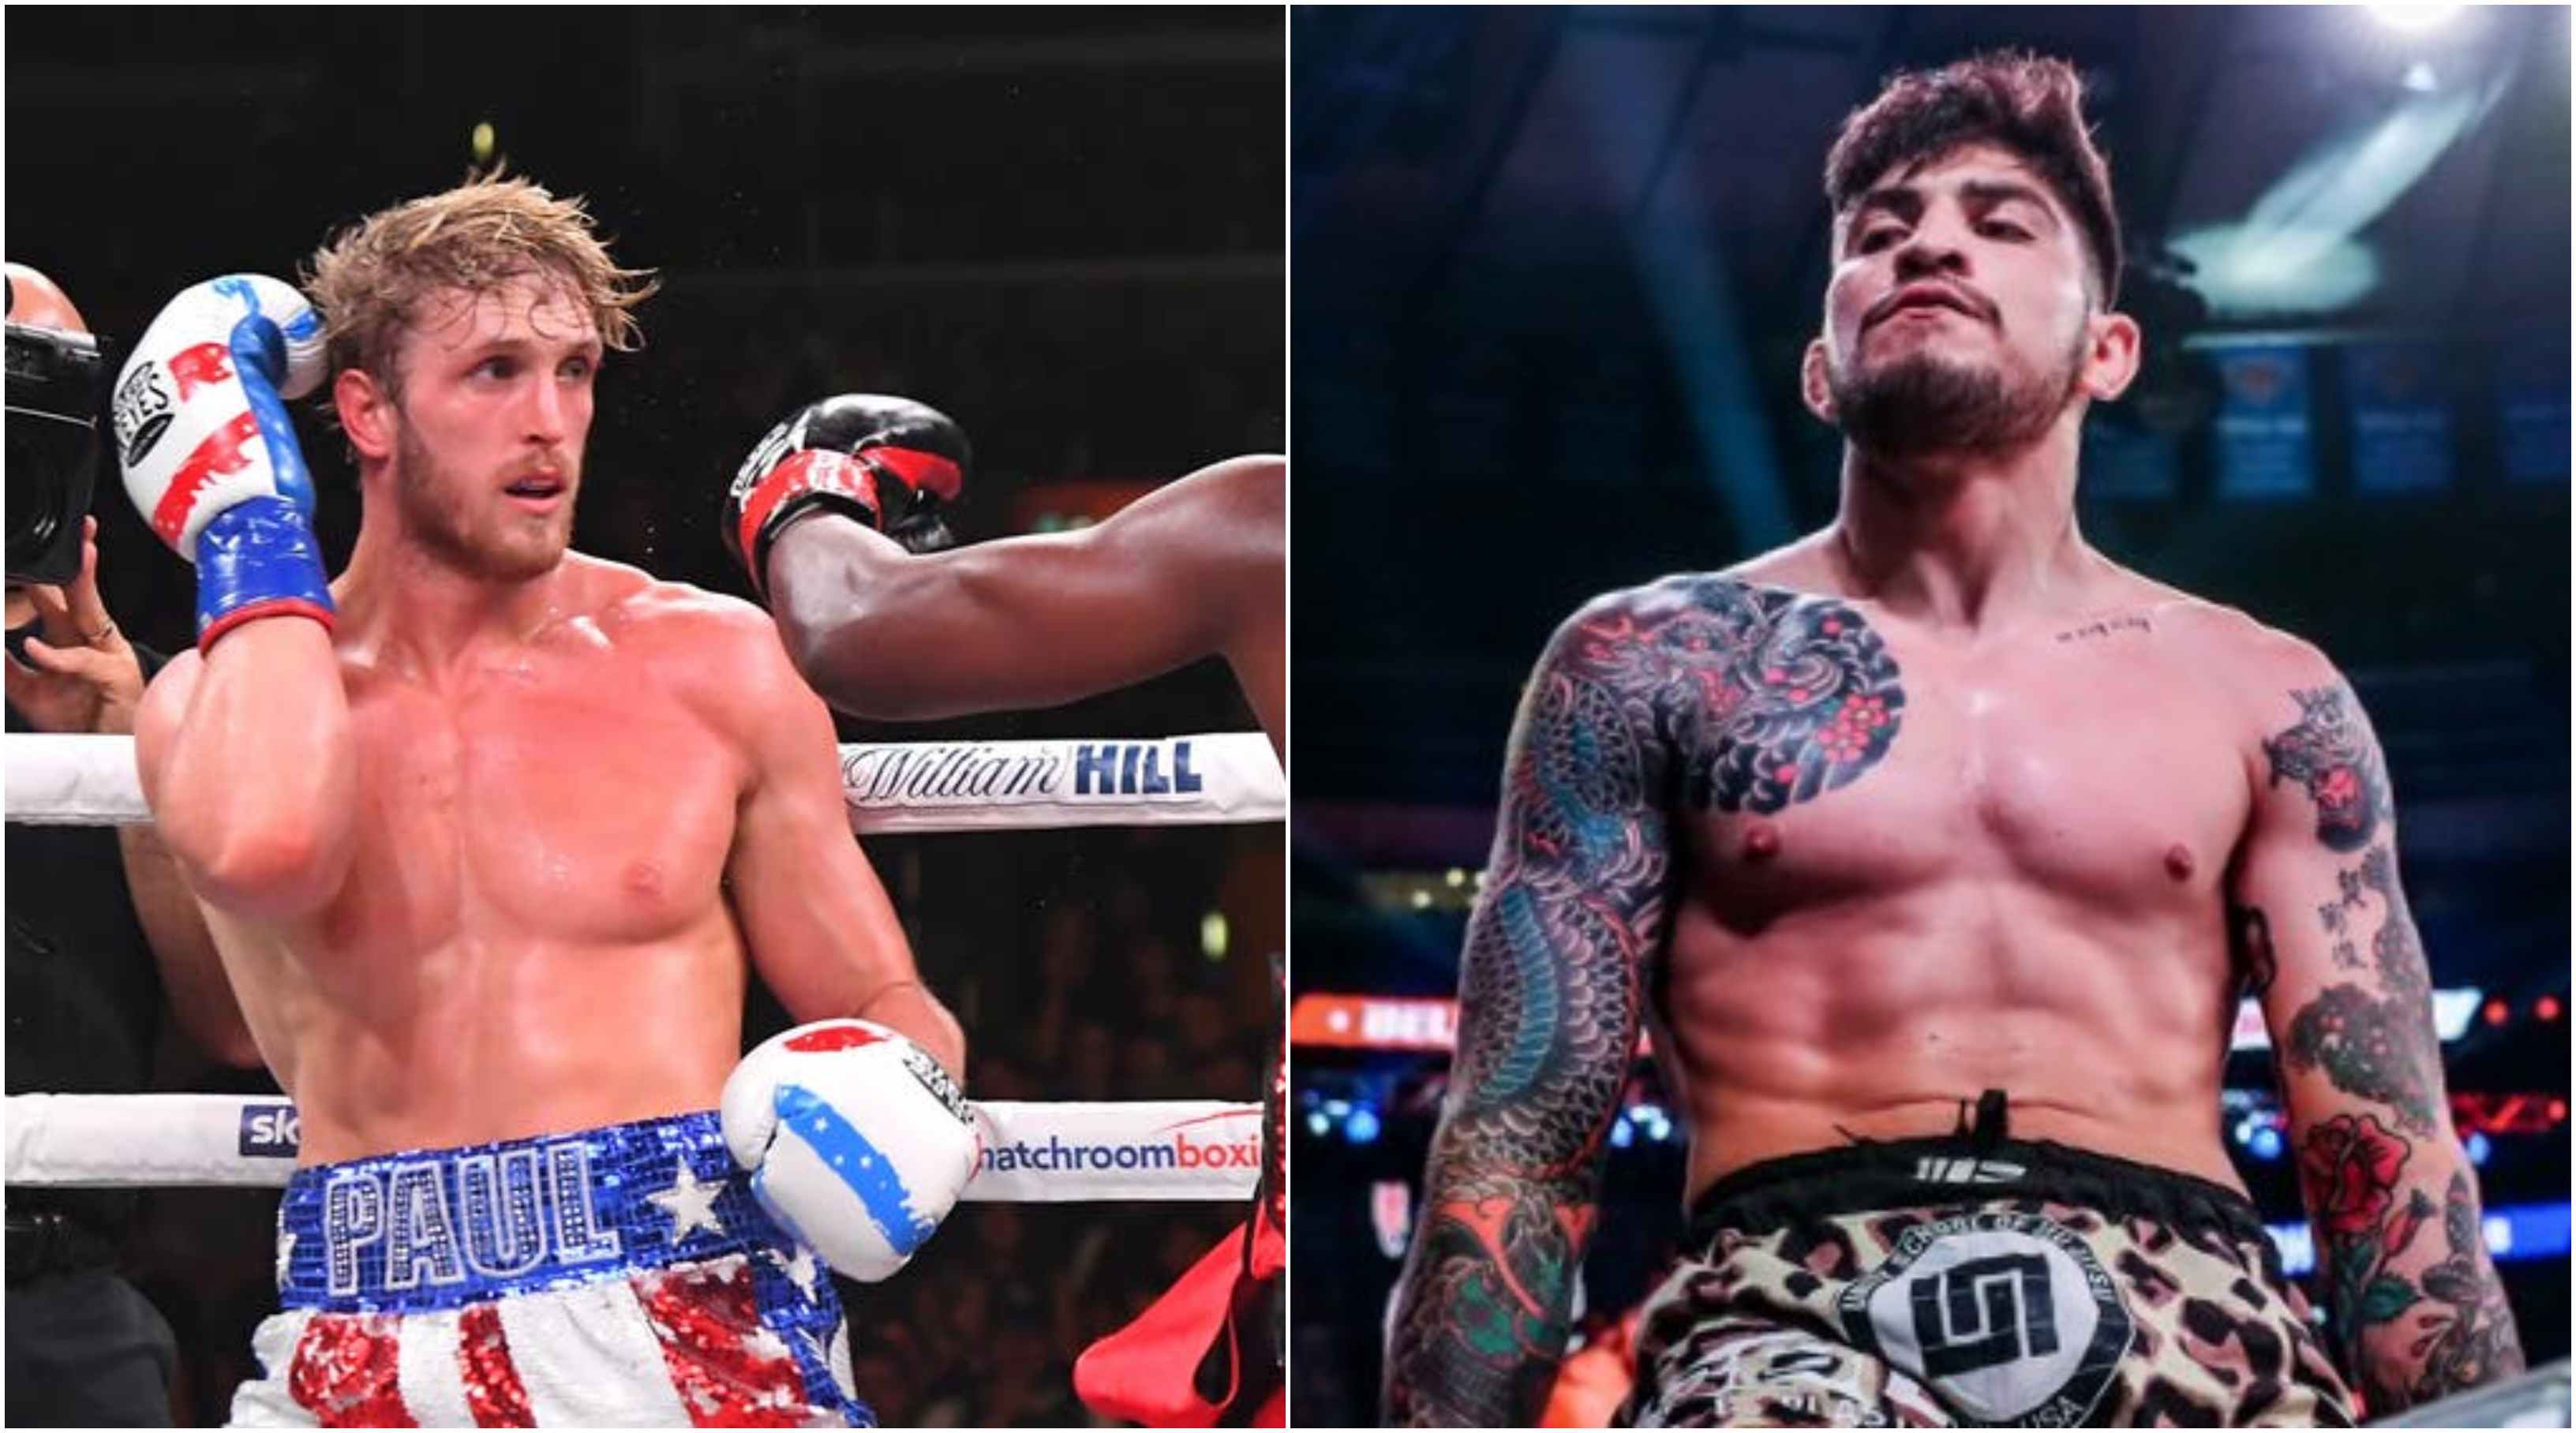 Logan Paul calls Dillon Danis a 'f**king p**sy', says he is ready to box him - Paul